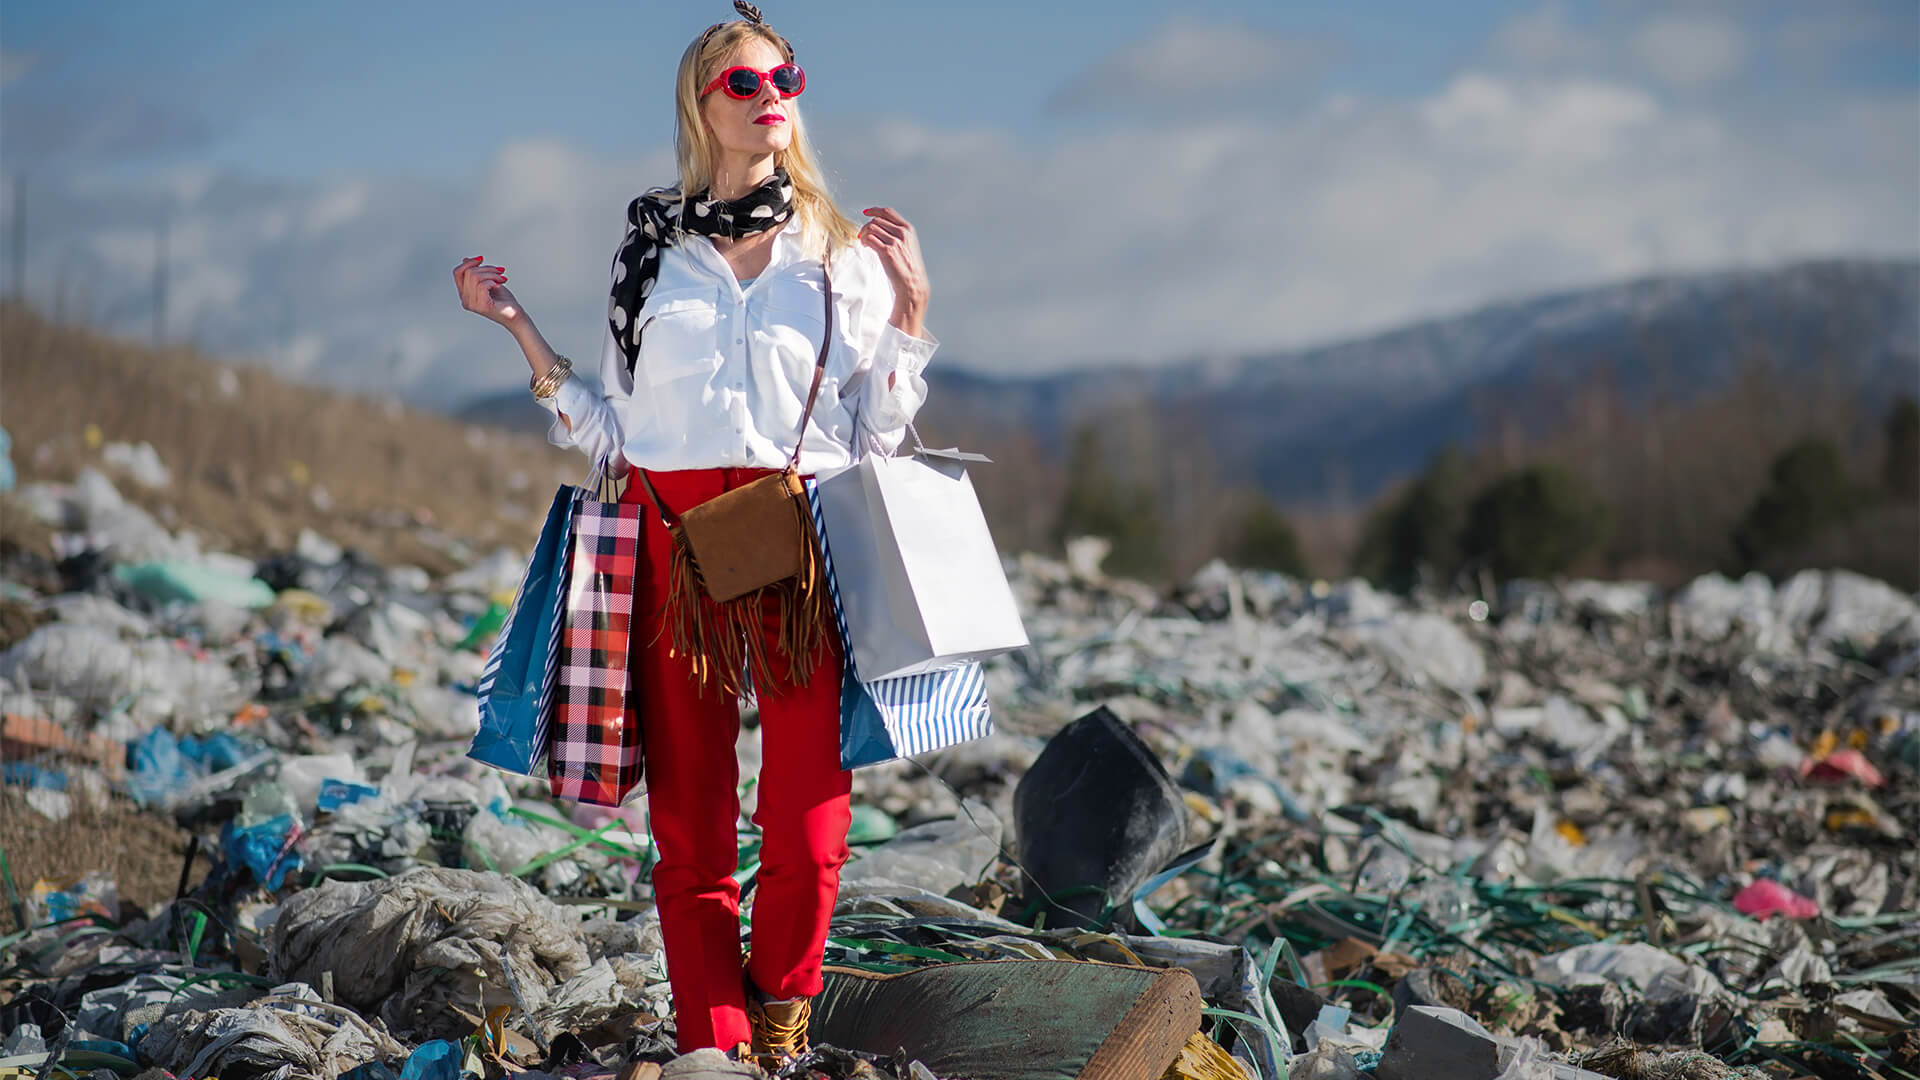 A woman holding shopping bags stands in a pile of fast fashion waste